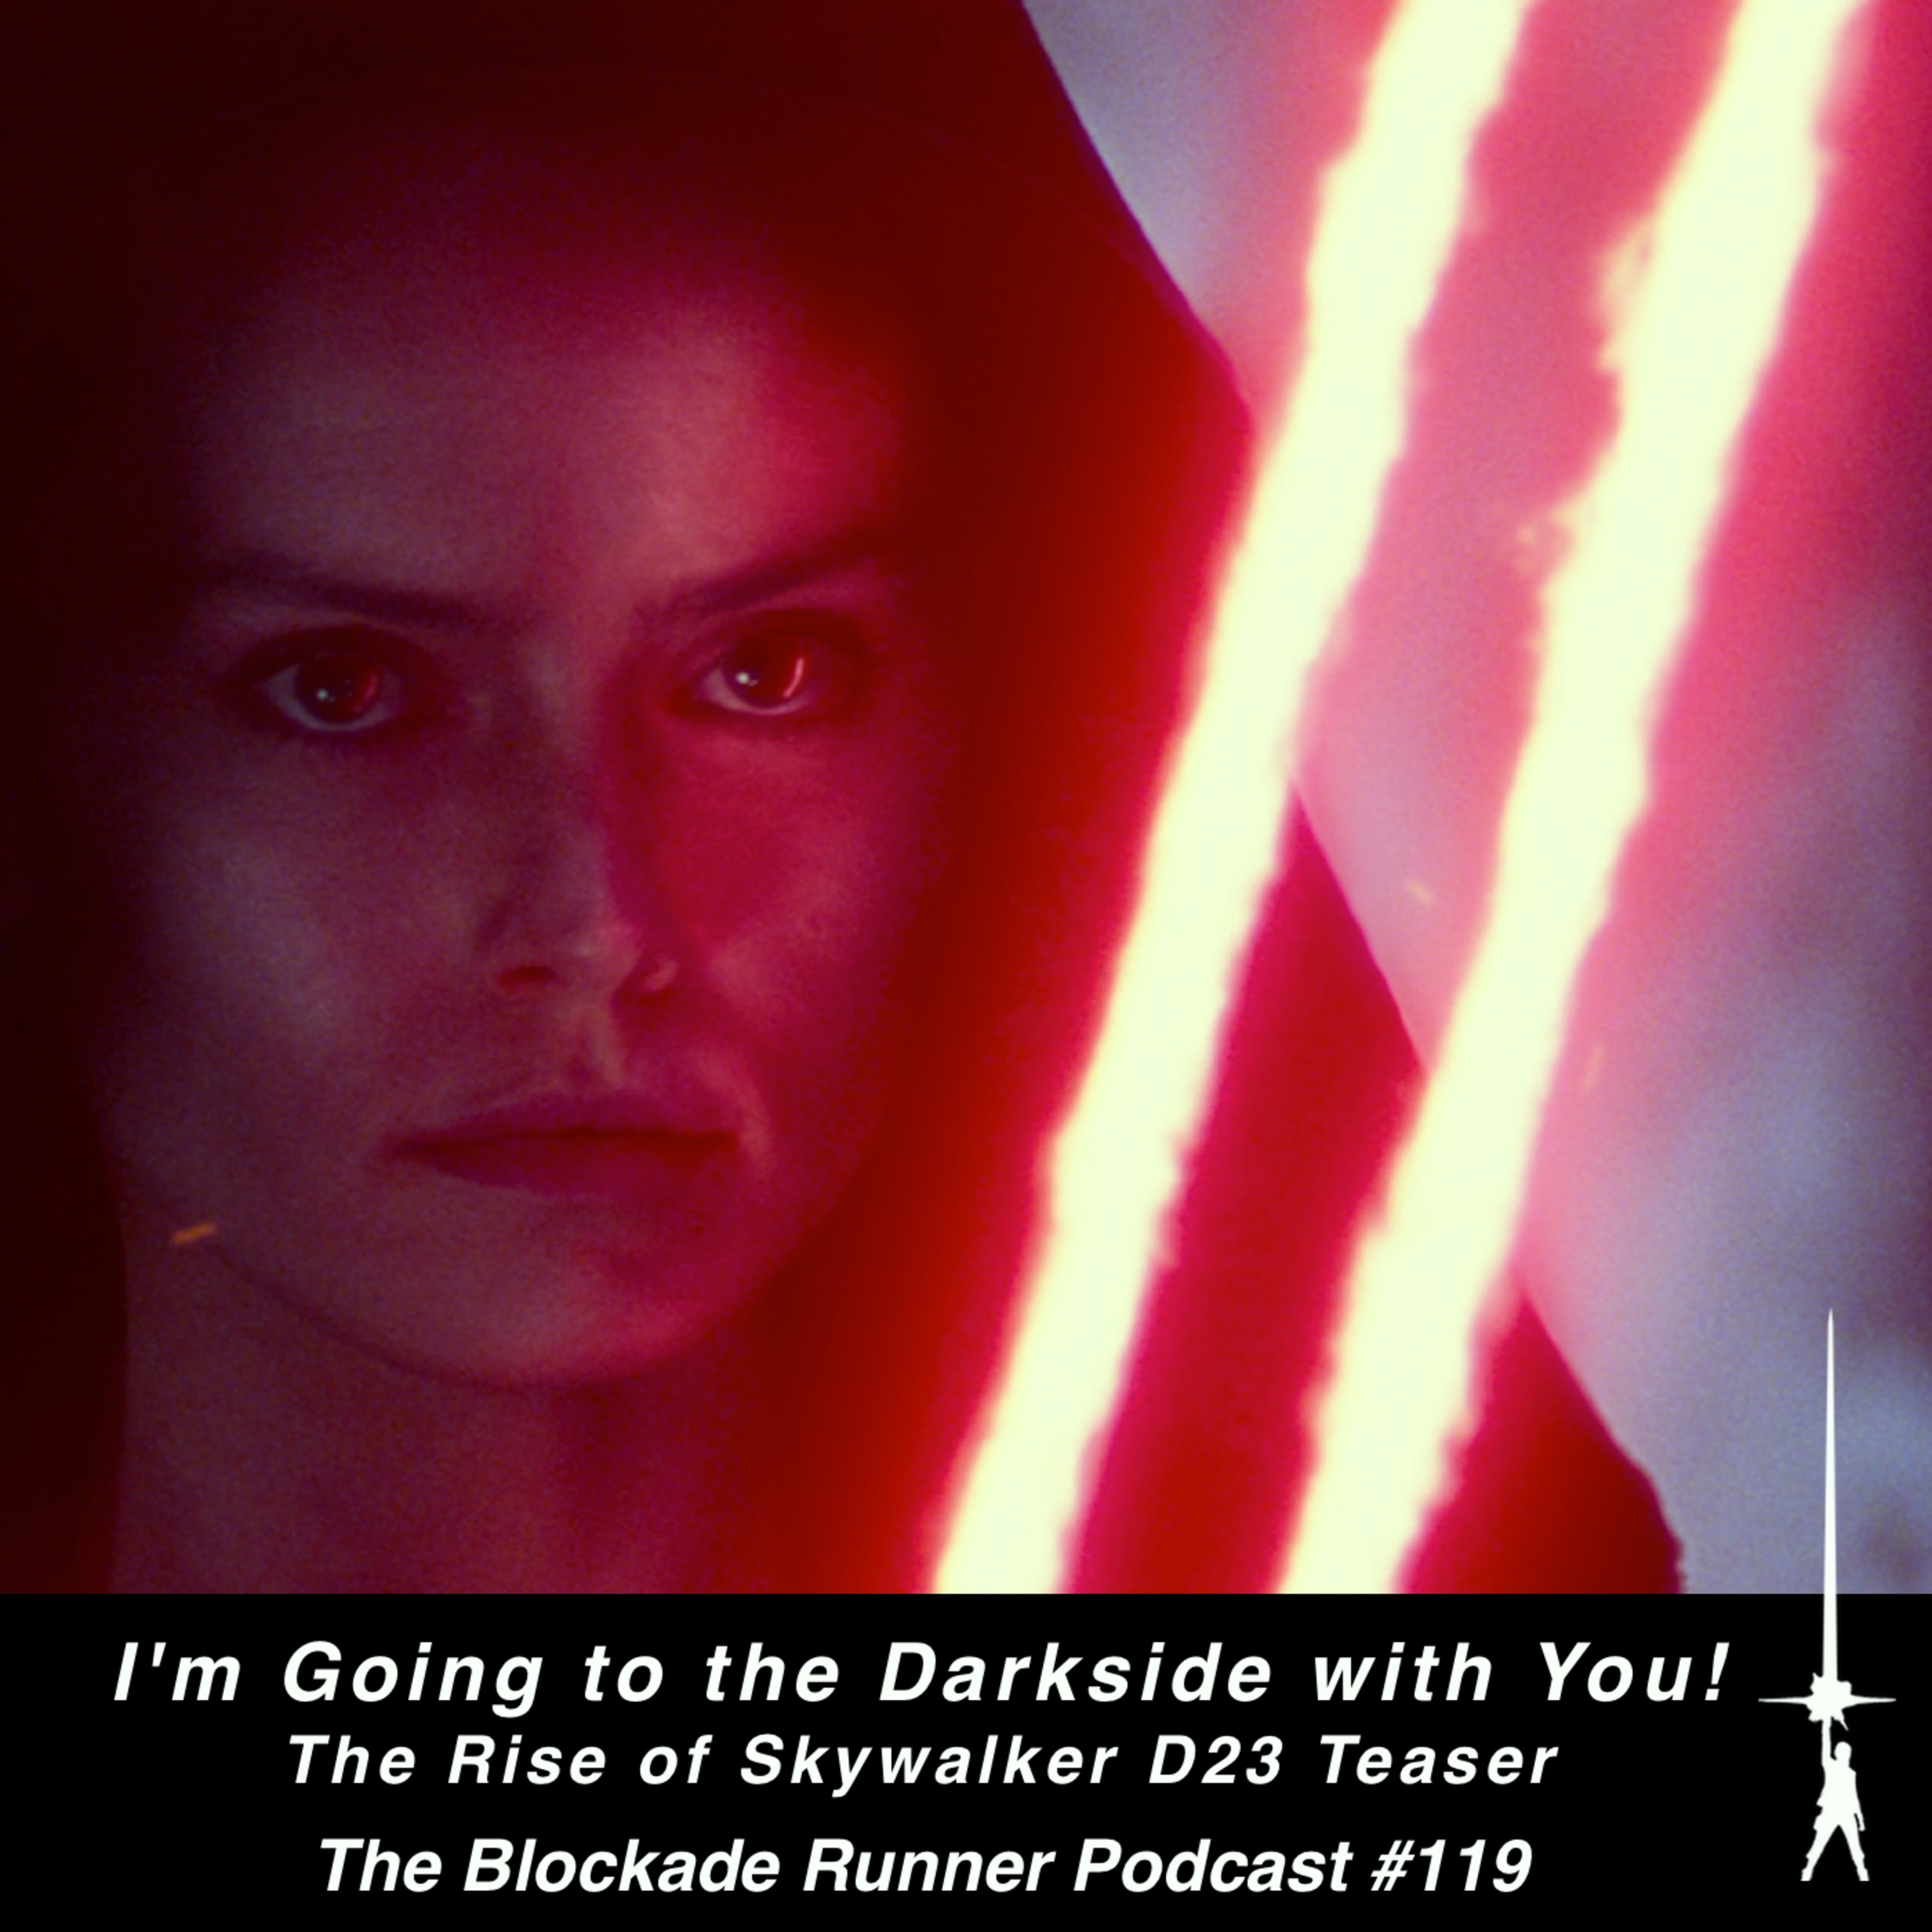 I'm Going to the Darkside with You! - The Rise of Skywalker D23 Teaser